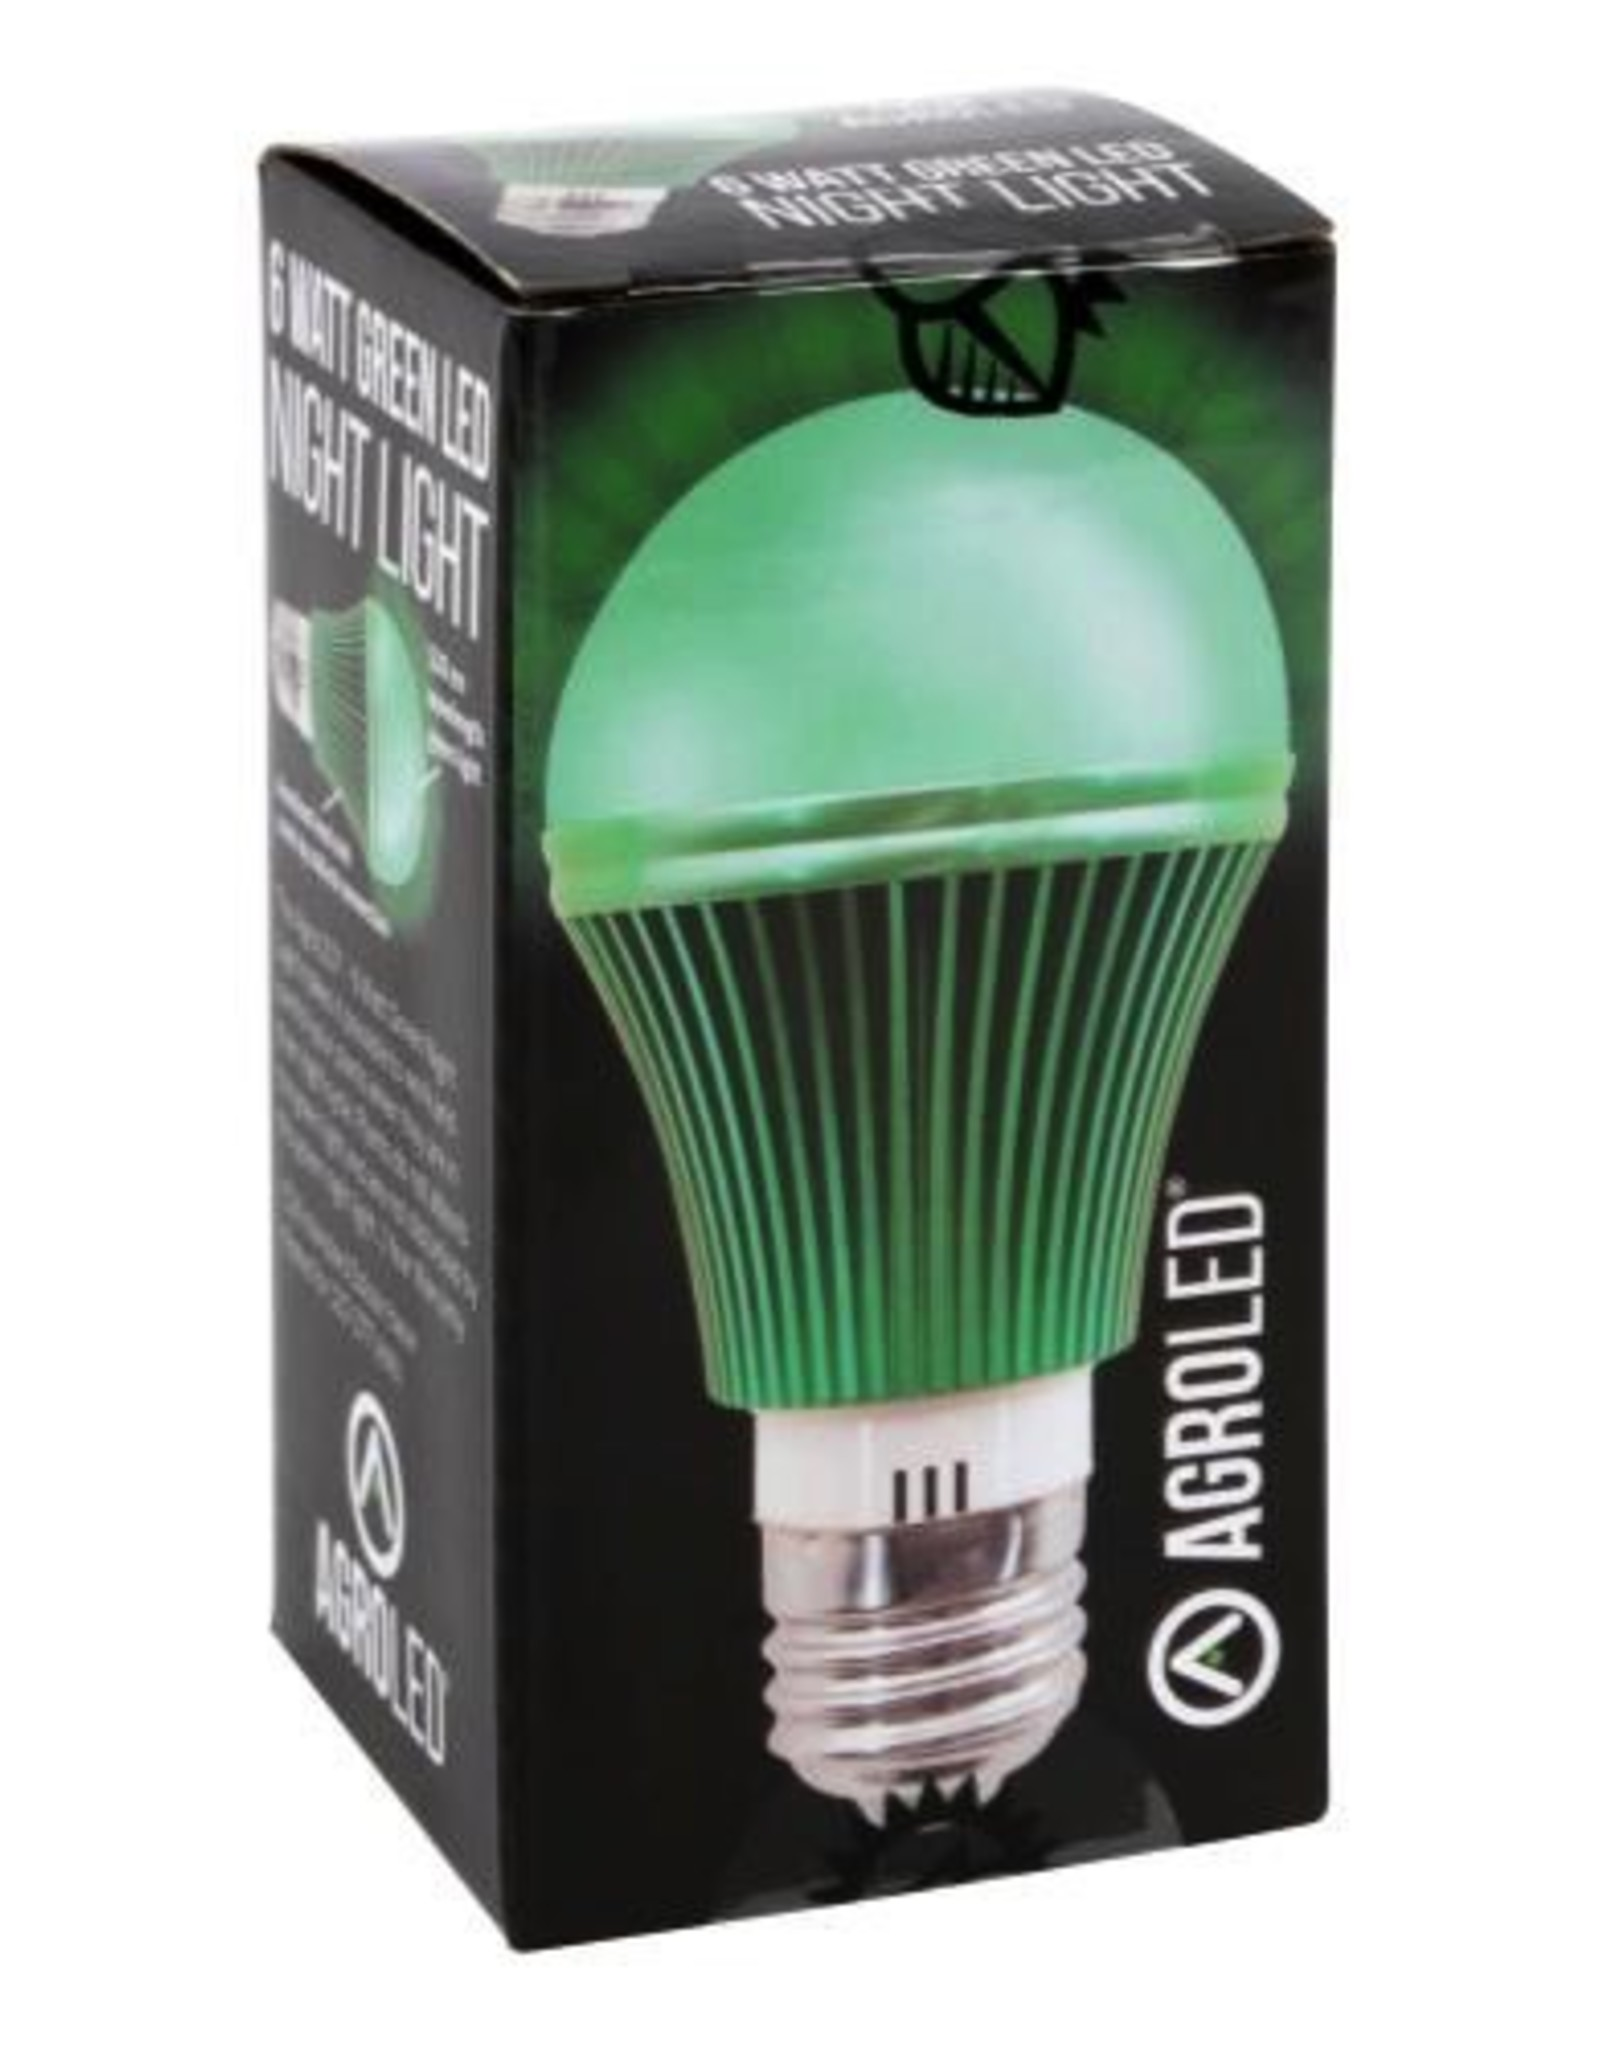 AgroLED AgroLED Green LED Night Light - 6 Watt